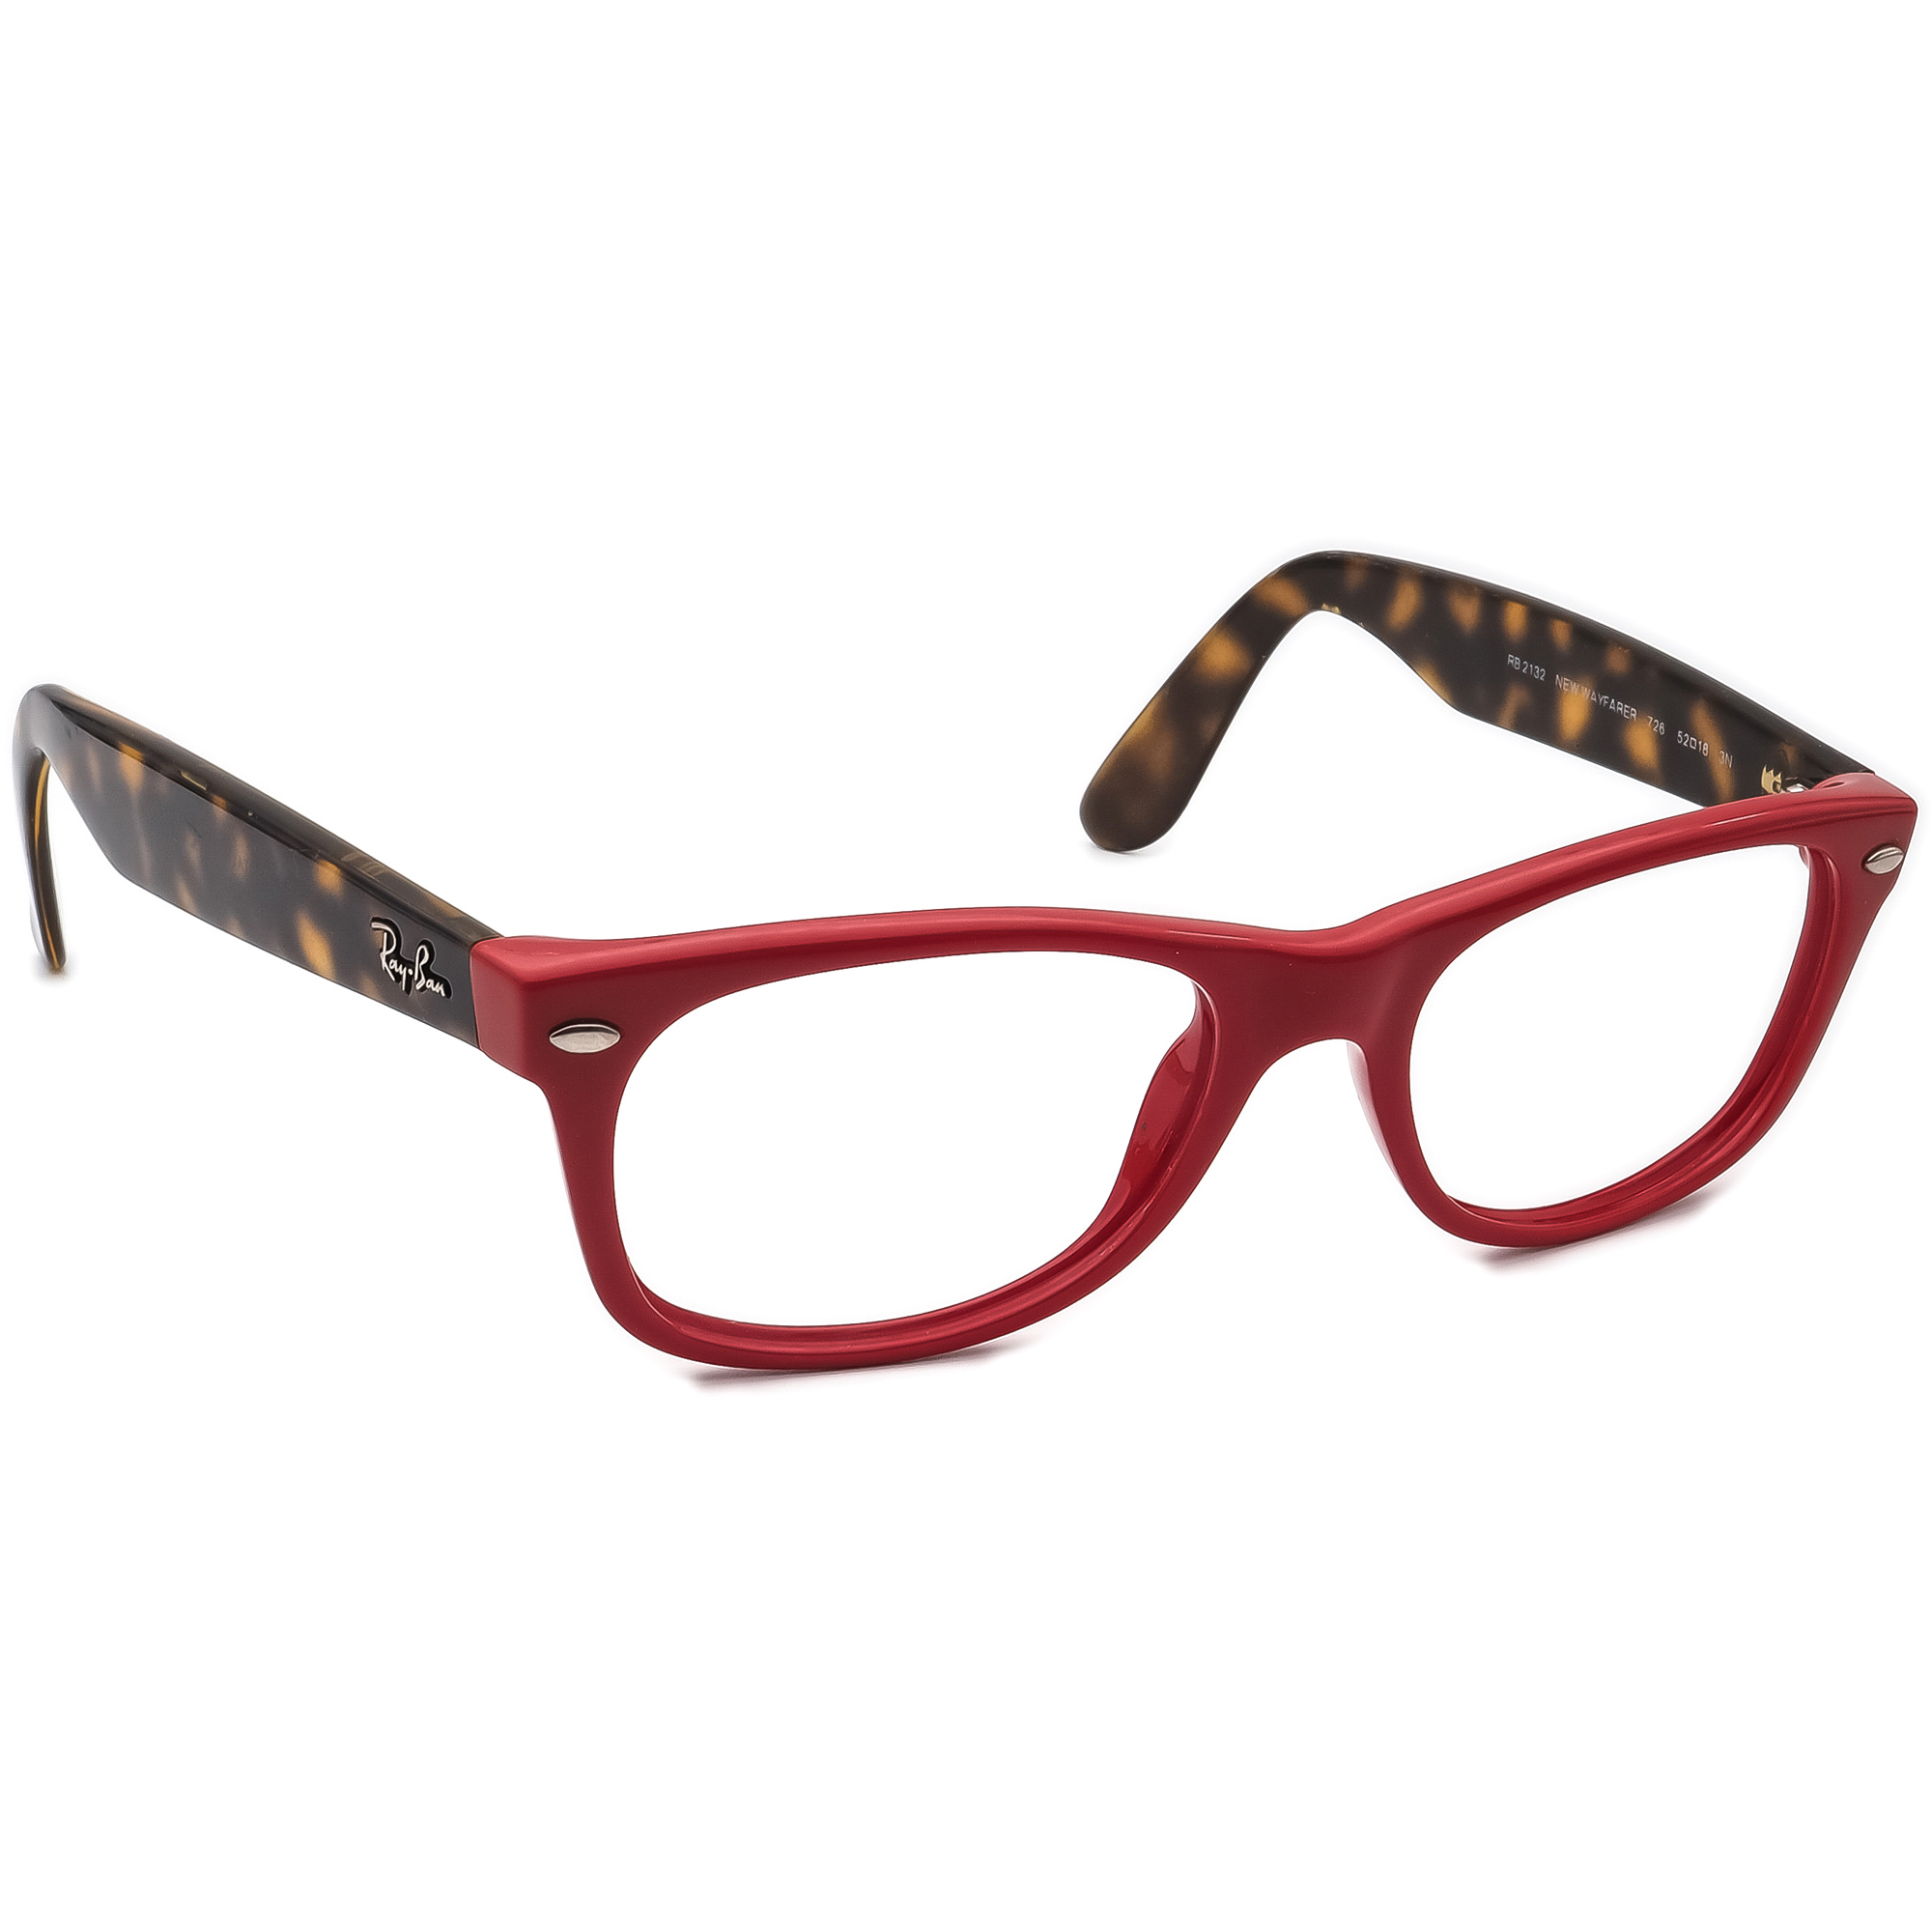 Ray-Ban RB 2132 New Wayfarer 726 Eyeglasses